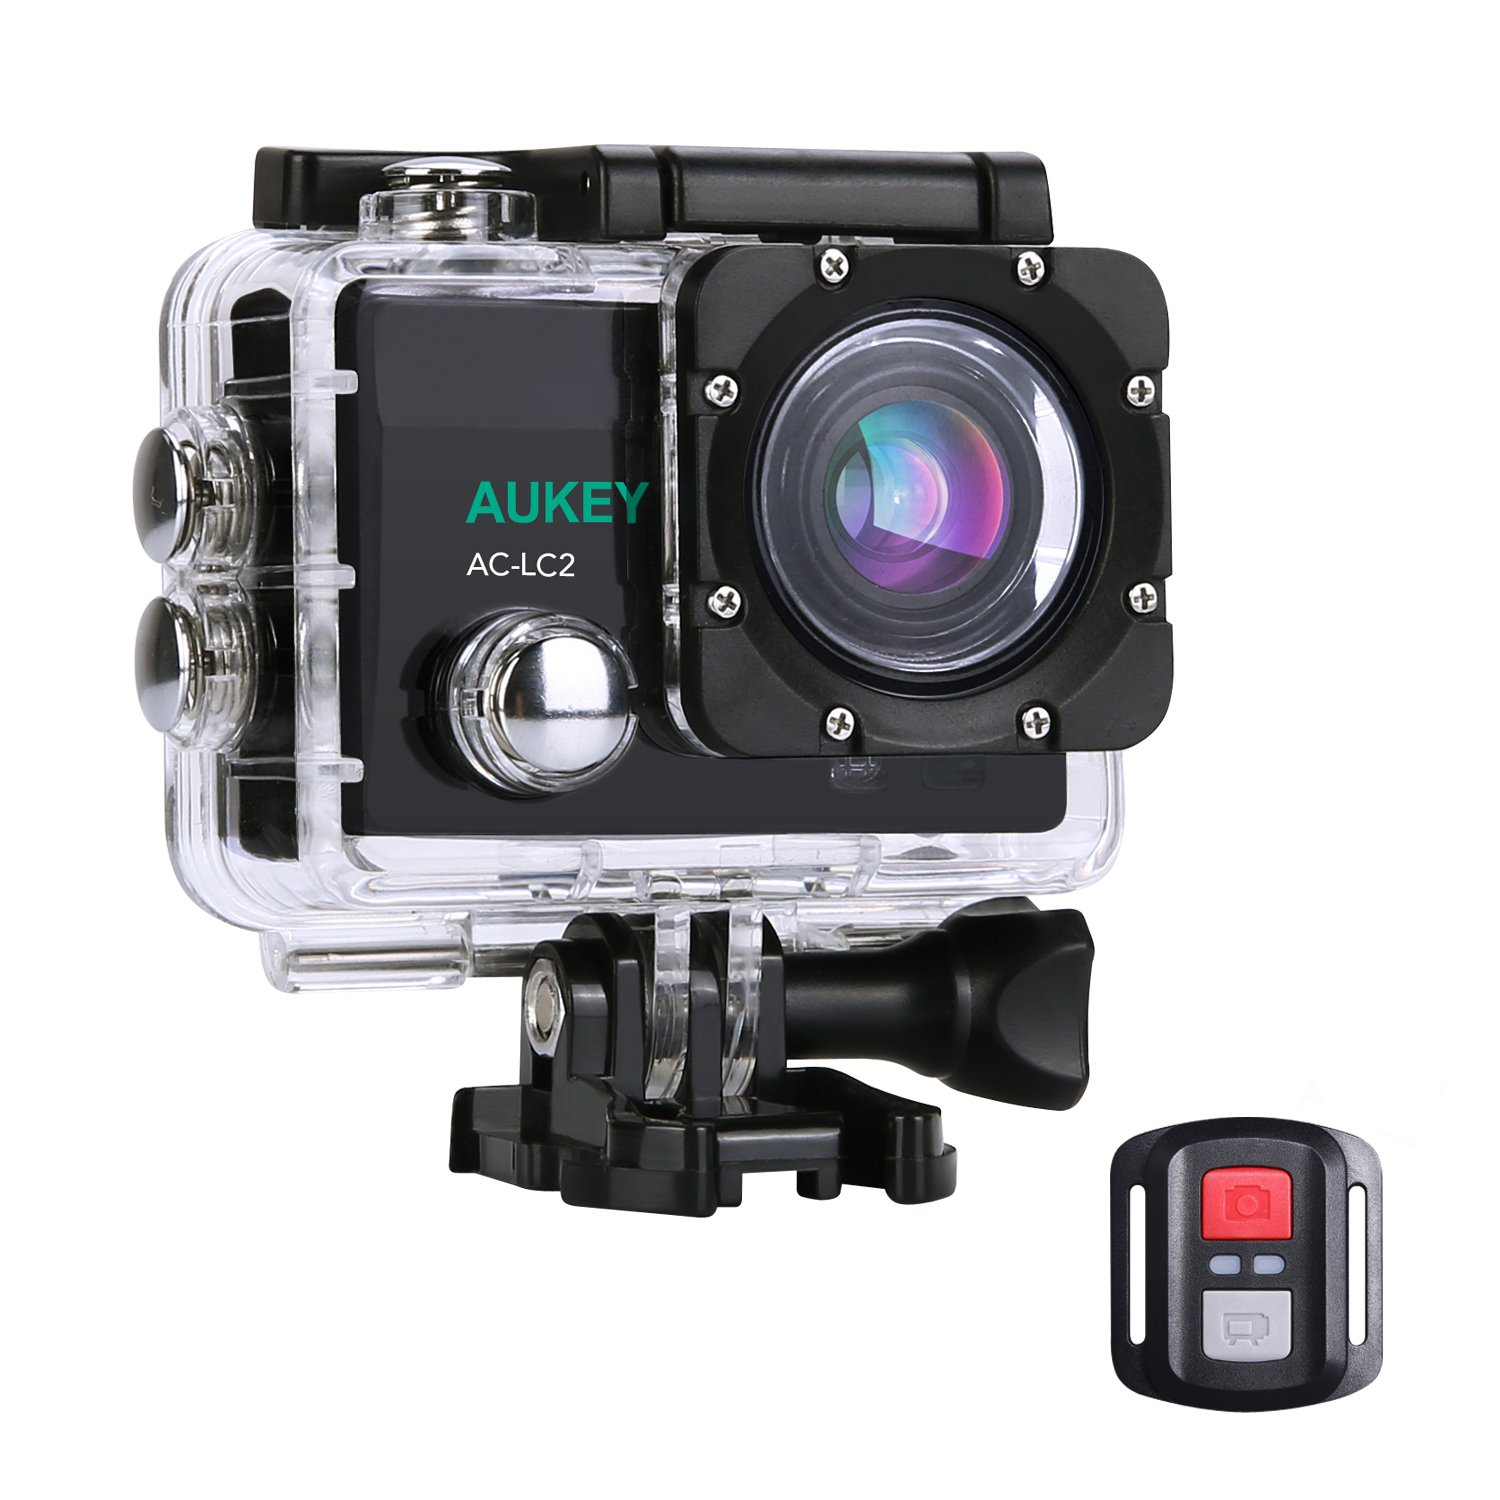 [Upgraded Version] AUKEY Action Camera, 4K Ultra HD Waterproof Underwater Sports Camera with 170 Degree Wide-Angle Lens, WiFi Phone Connection and 2.4GHz Remote